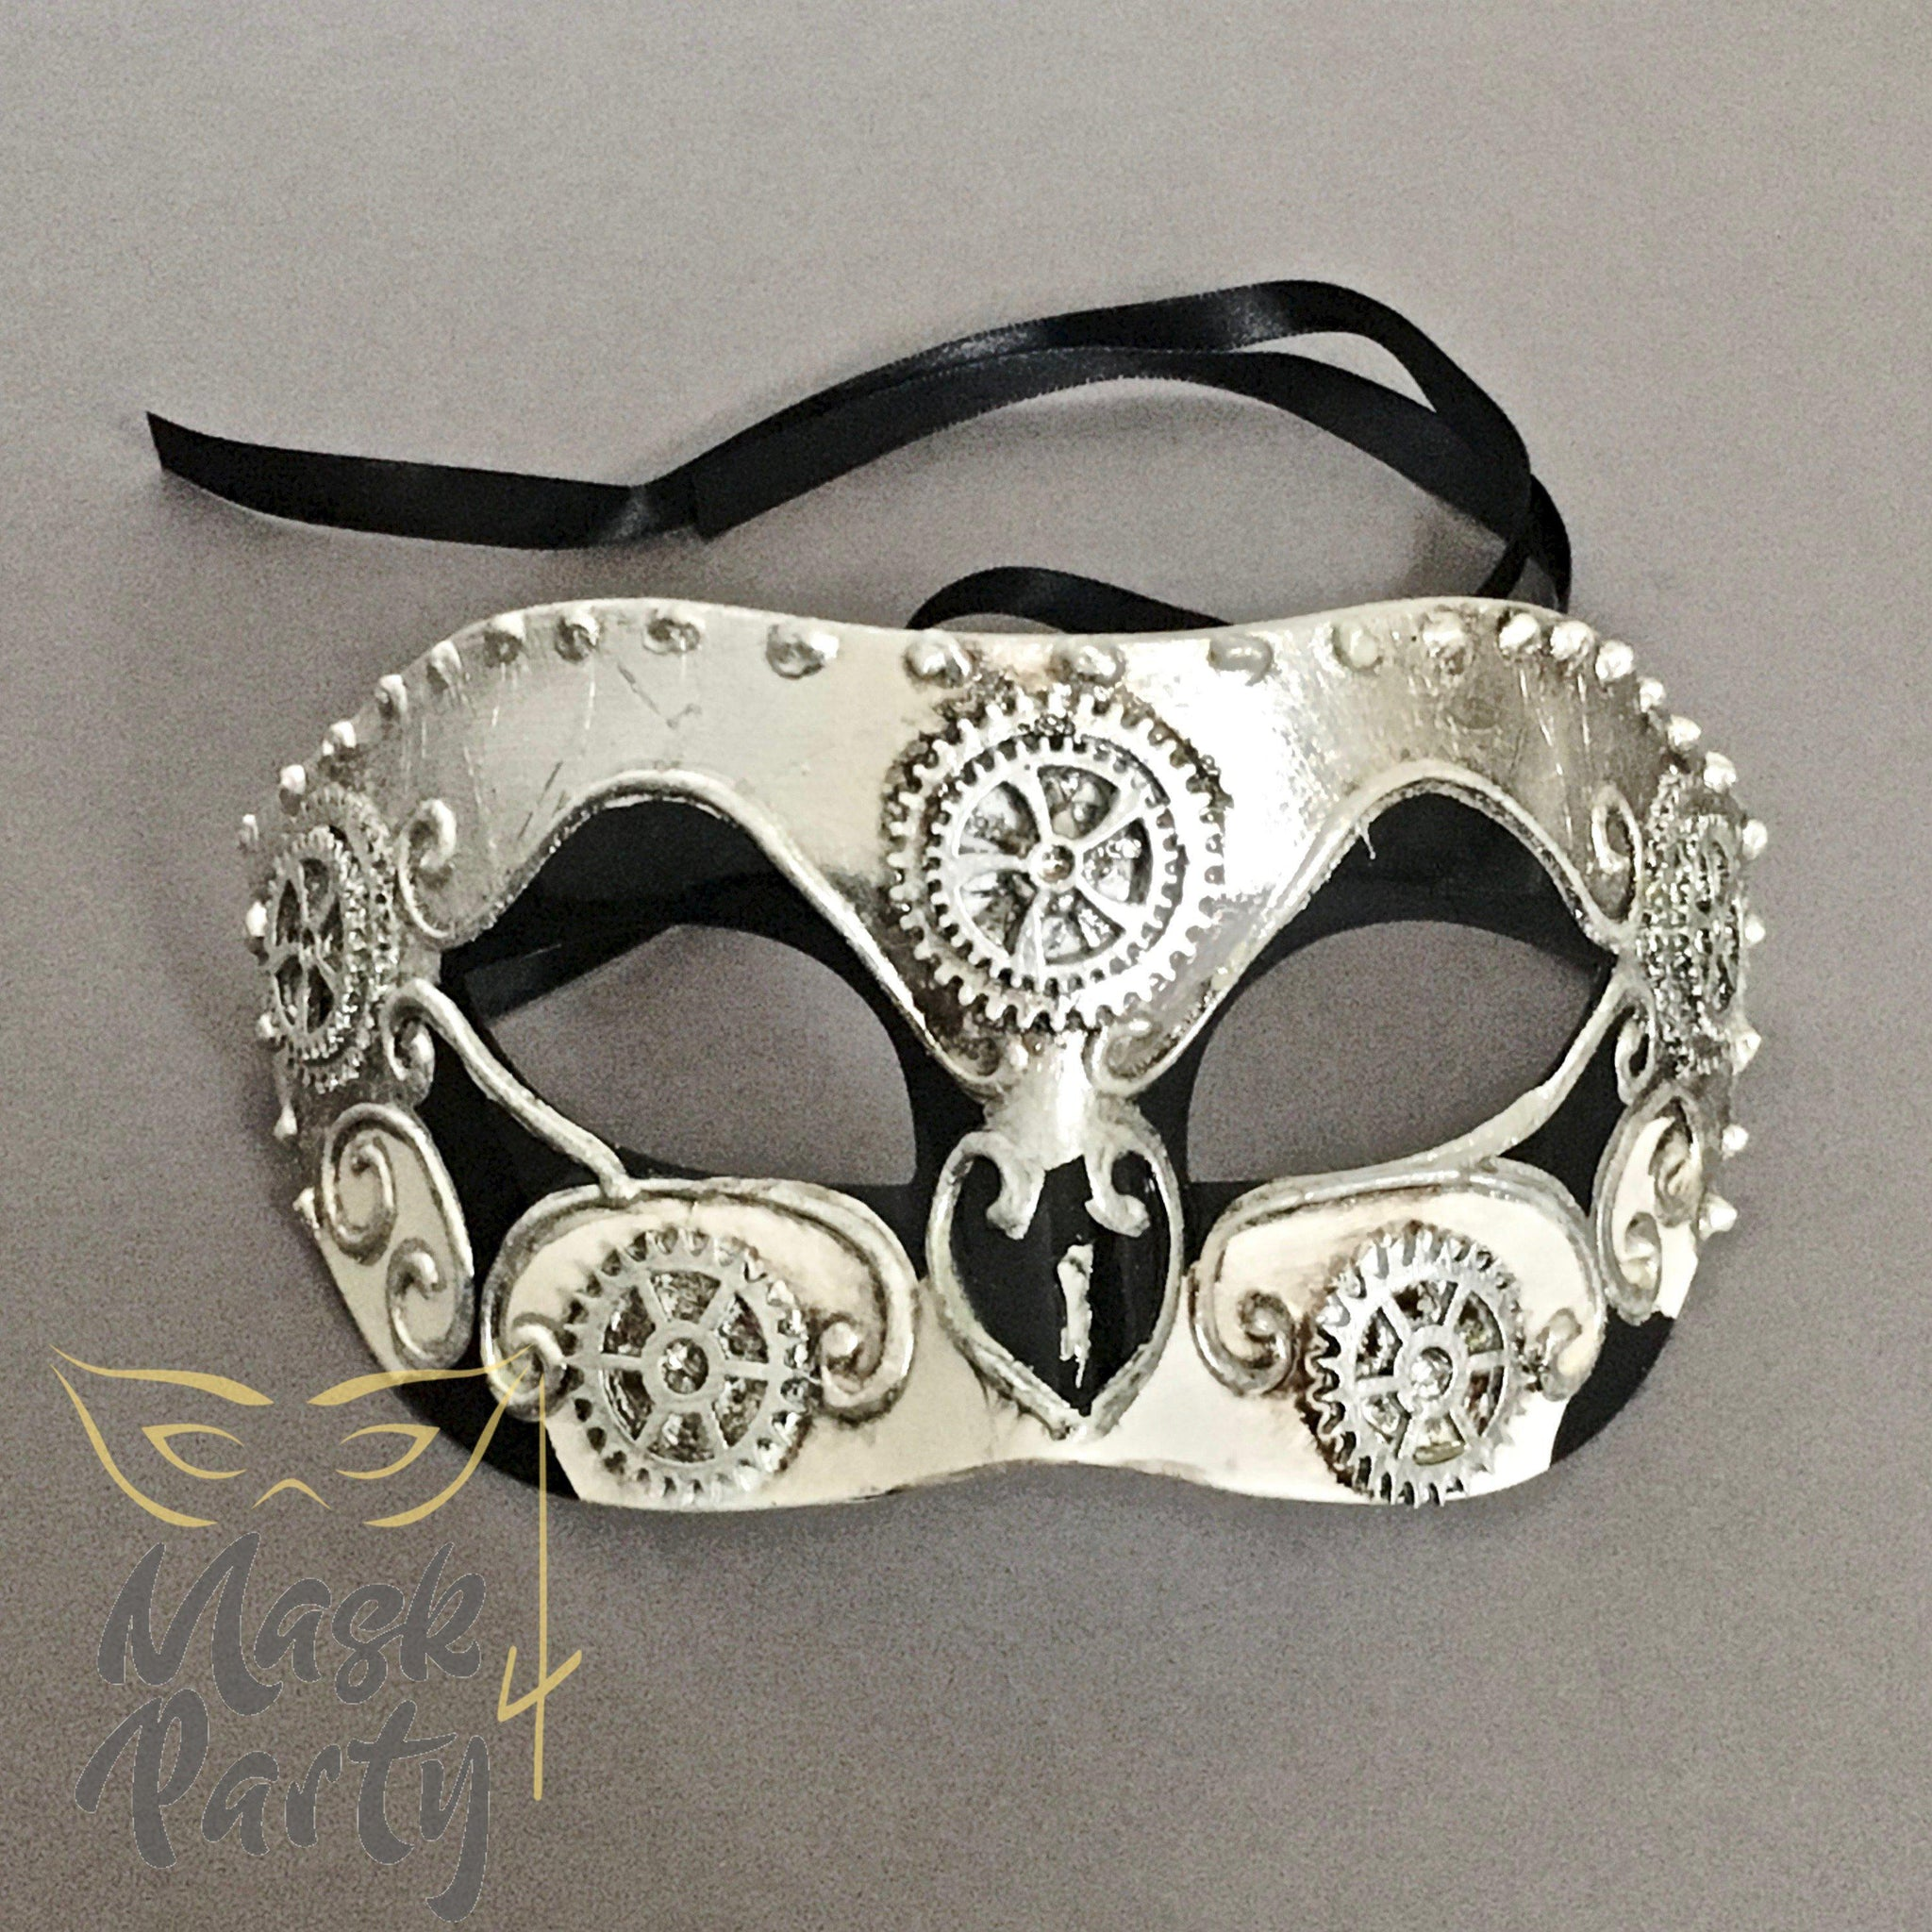 NEW - MASQUERADE MASK - STEAMPUNK VENETIAN EYE - IVORY/SILVER - Mask4Party